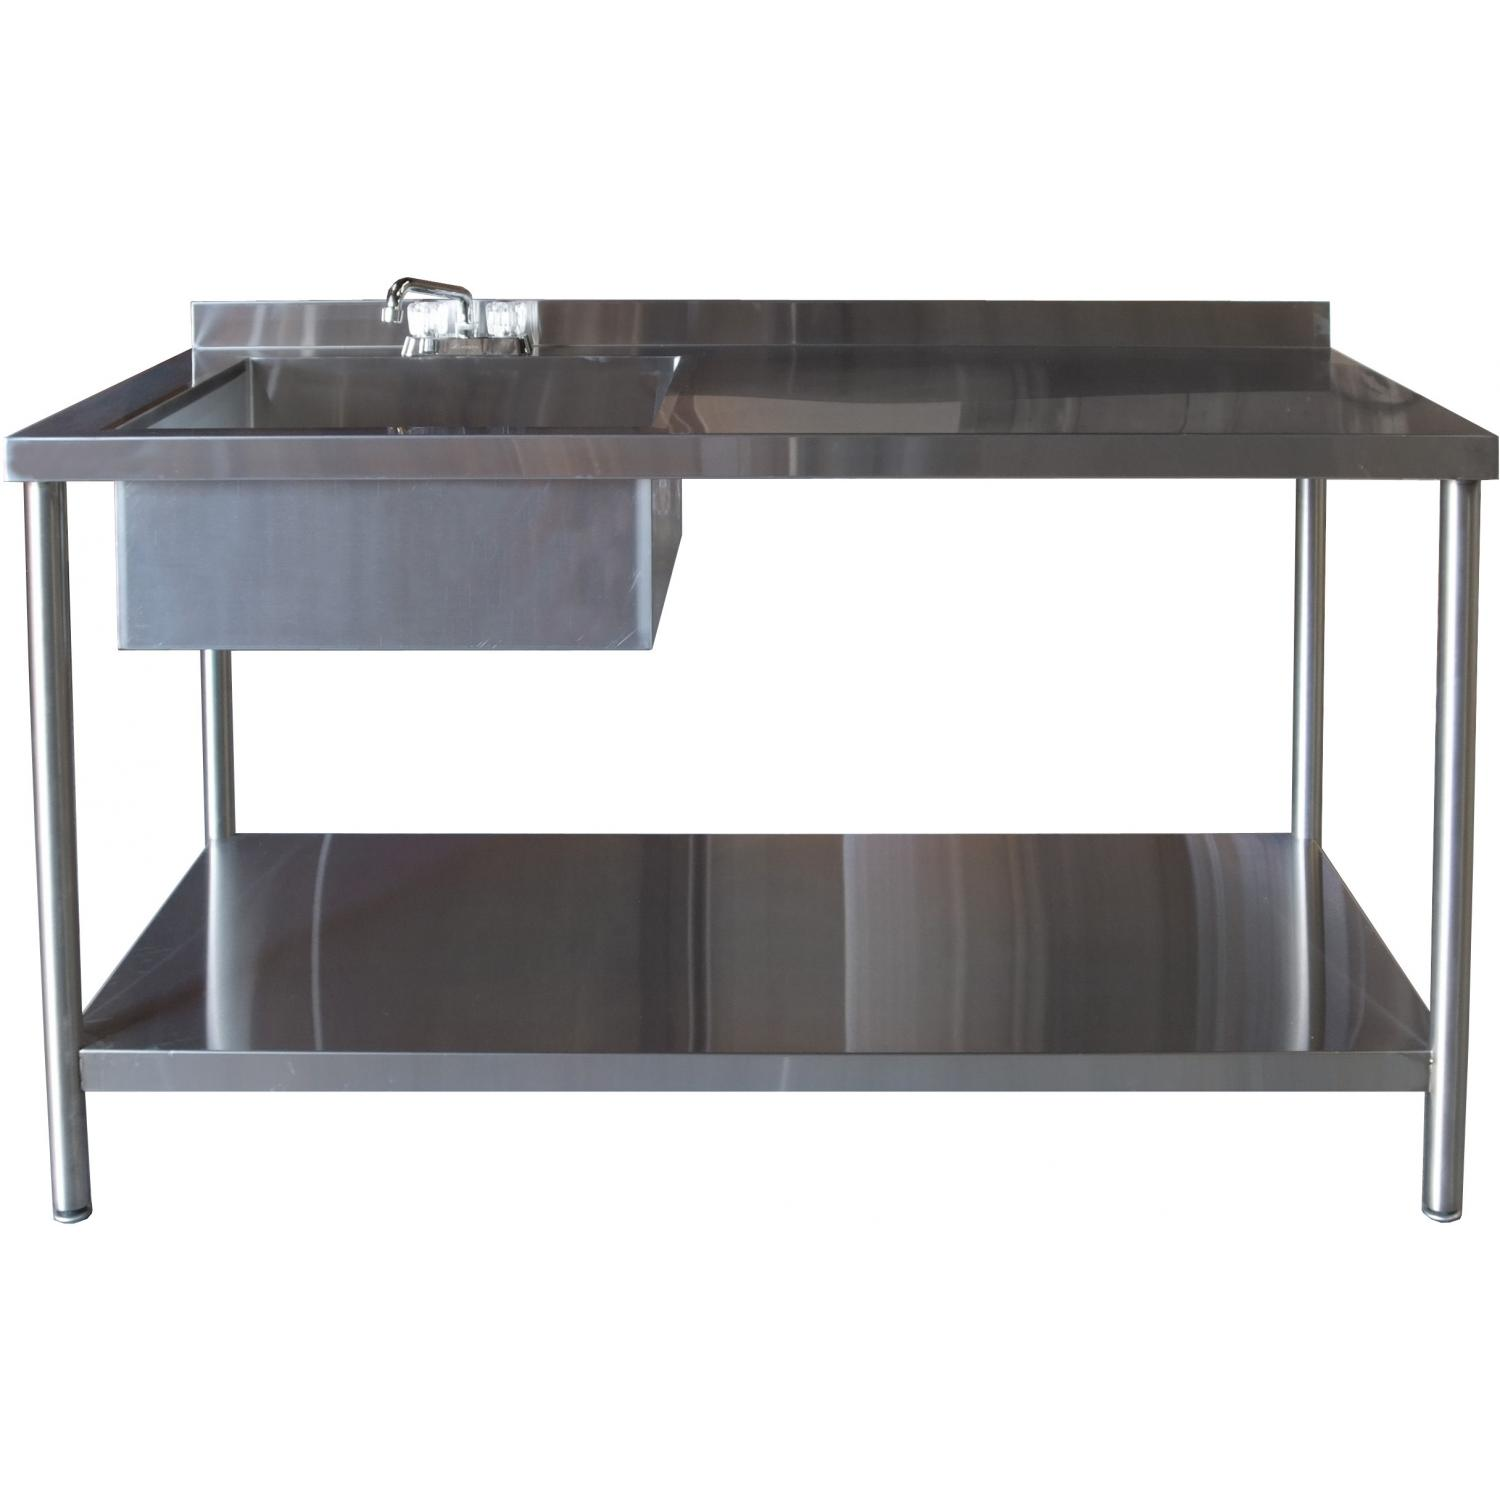 BBQ Guys 30x60 Stainless Steel Table With Sink And Faucet